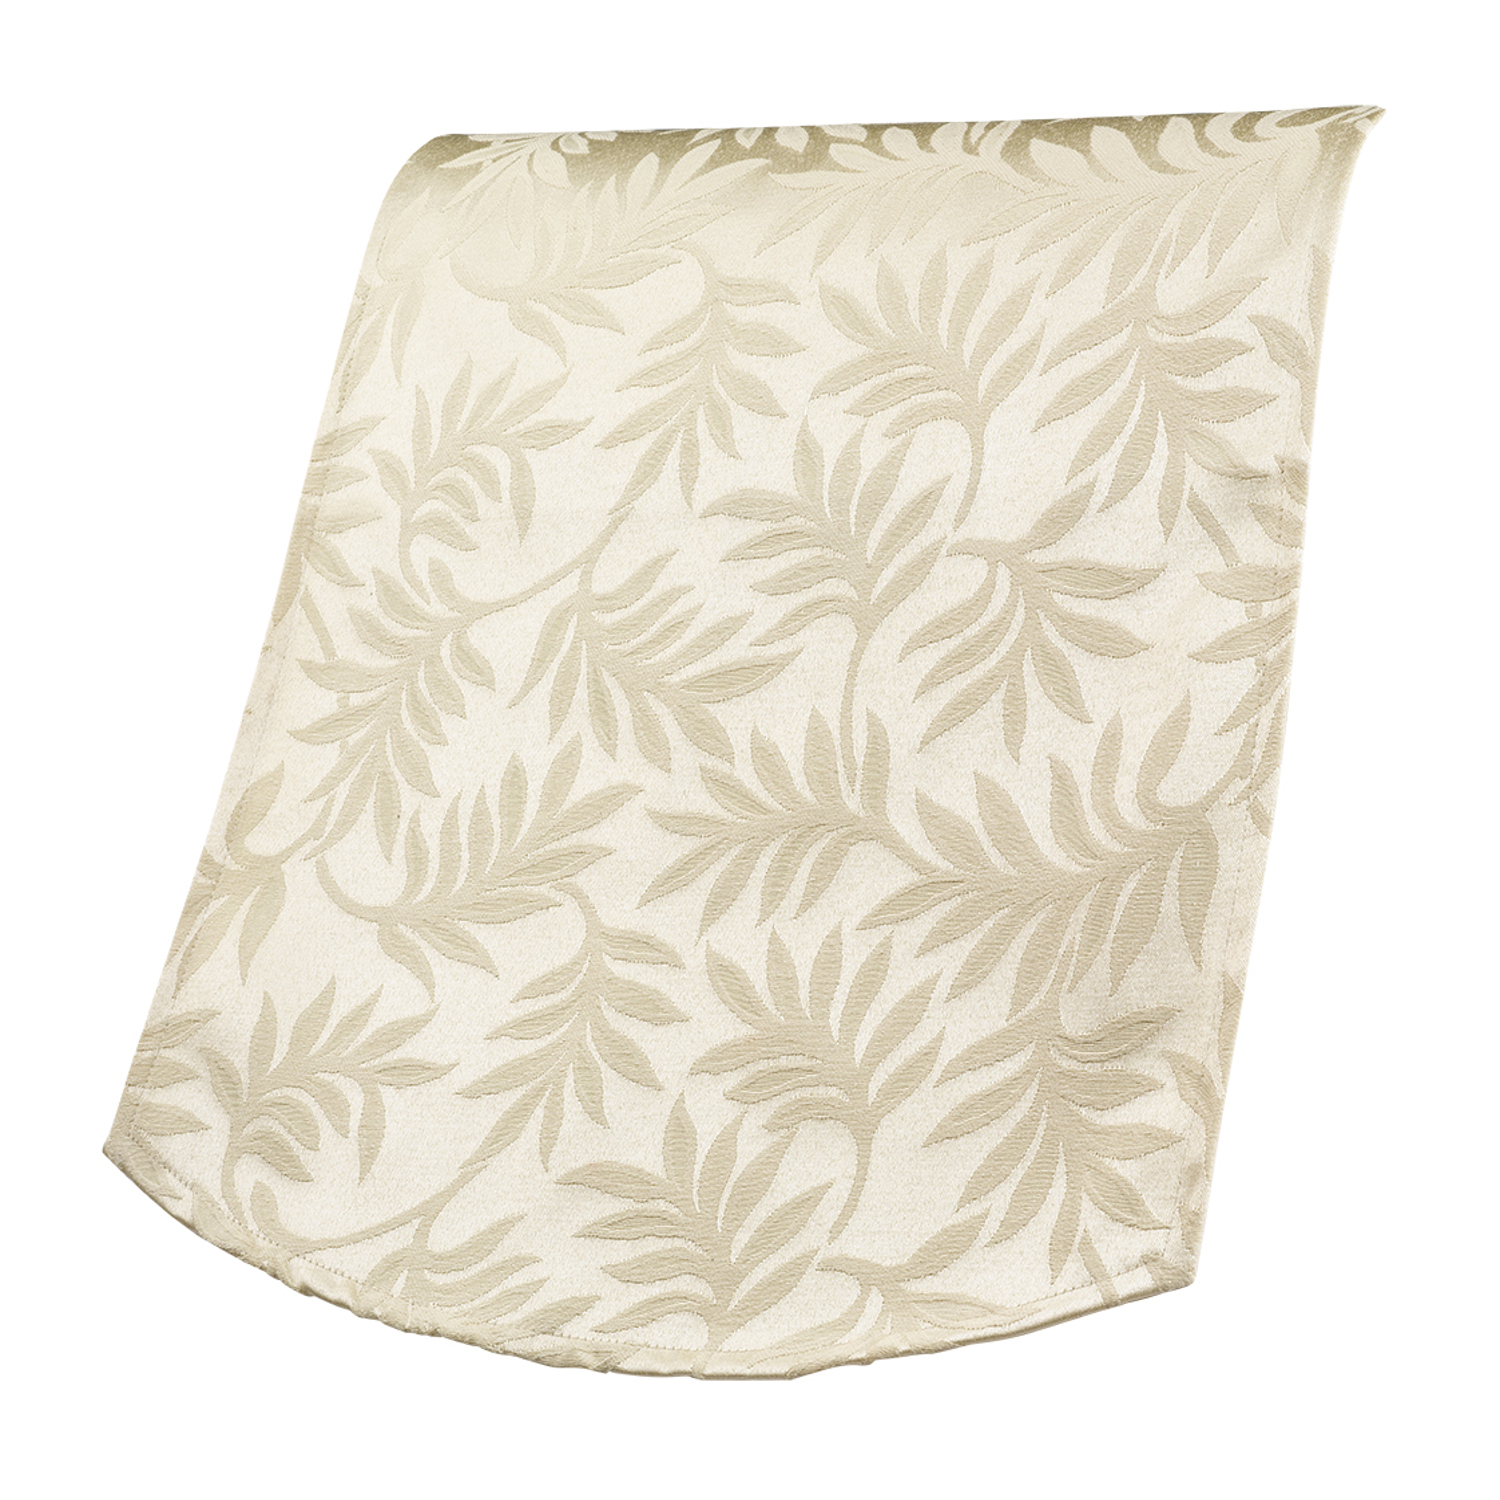 Decorative traditional leaf style antimacassar chairback for Decorative furniture covers